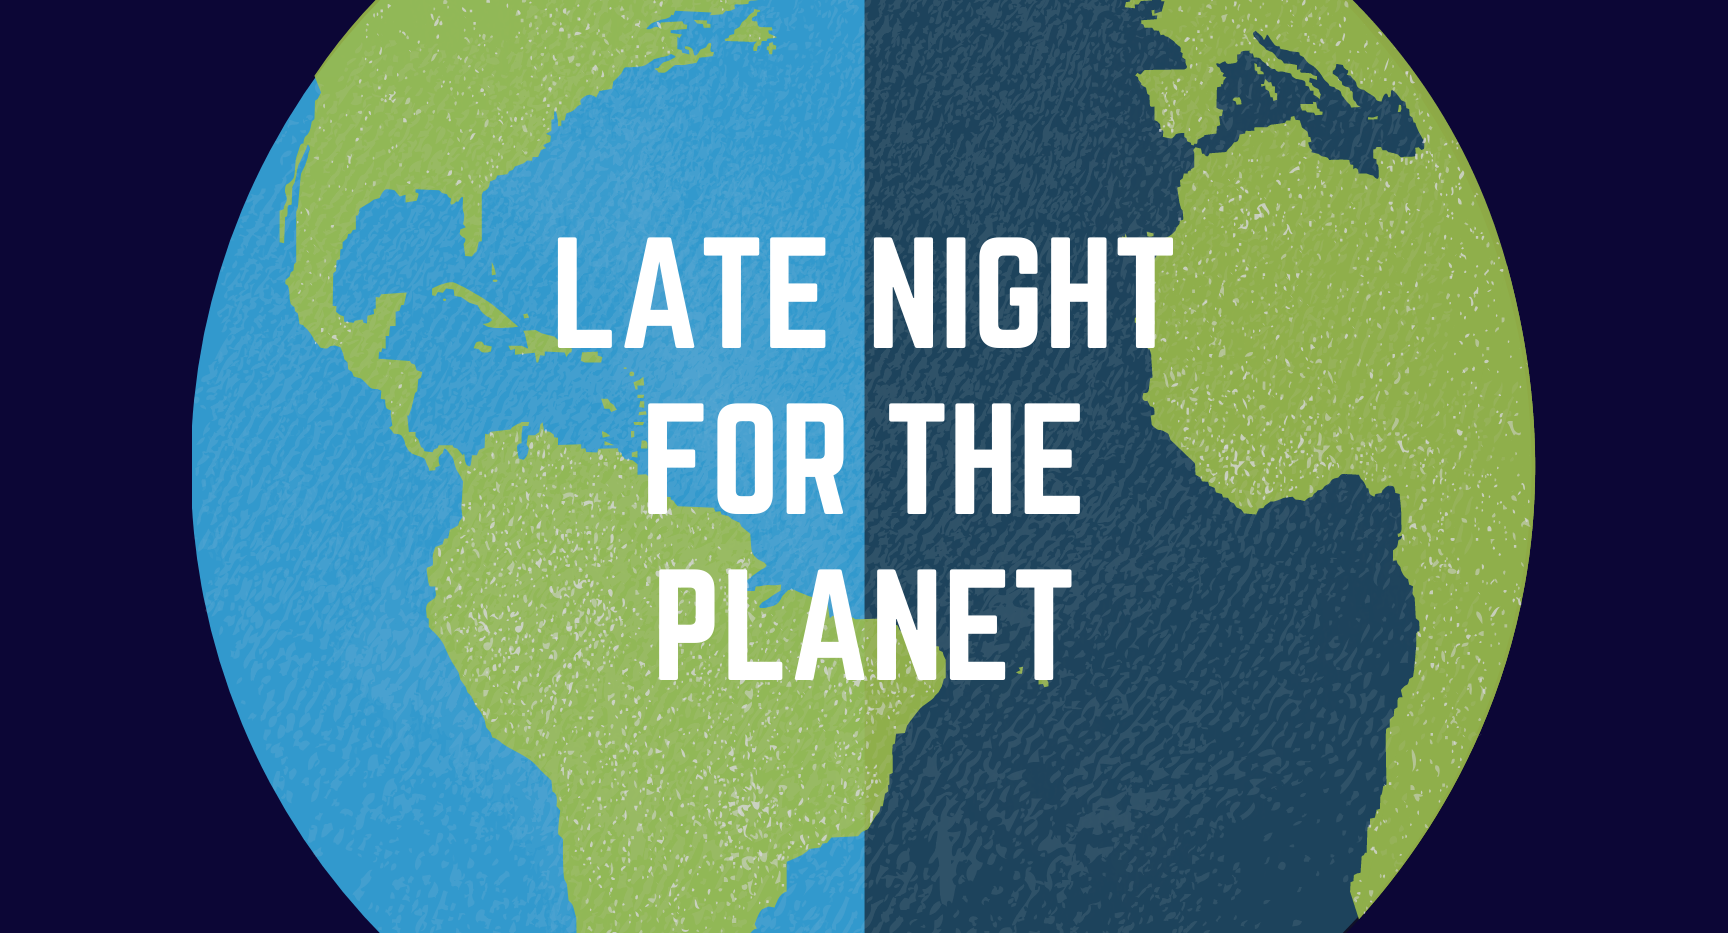 Copy of Late night for the planet (2).pn